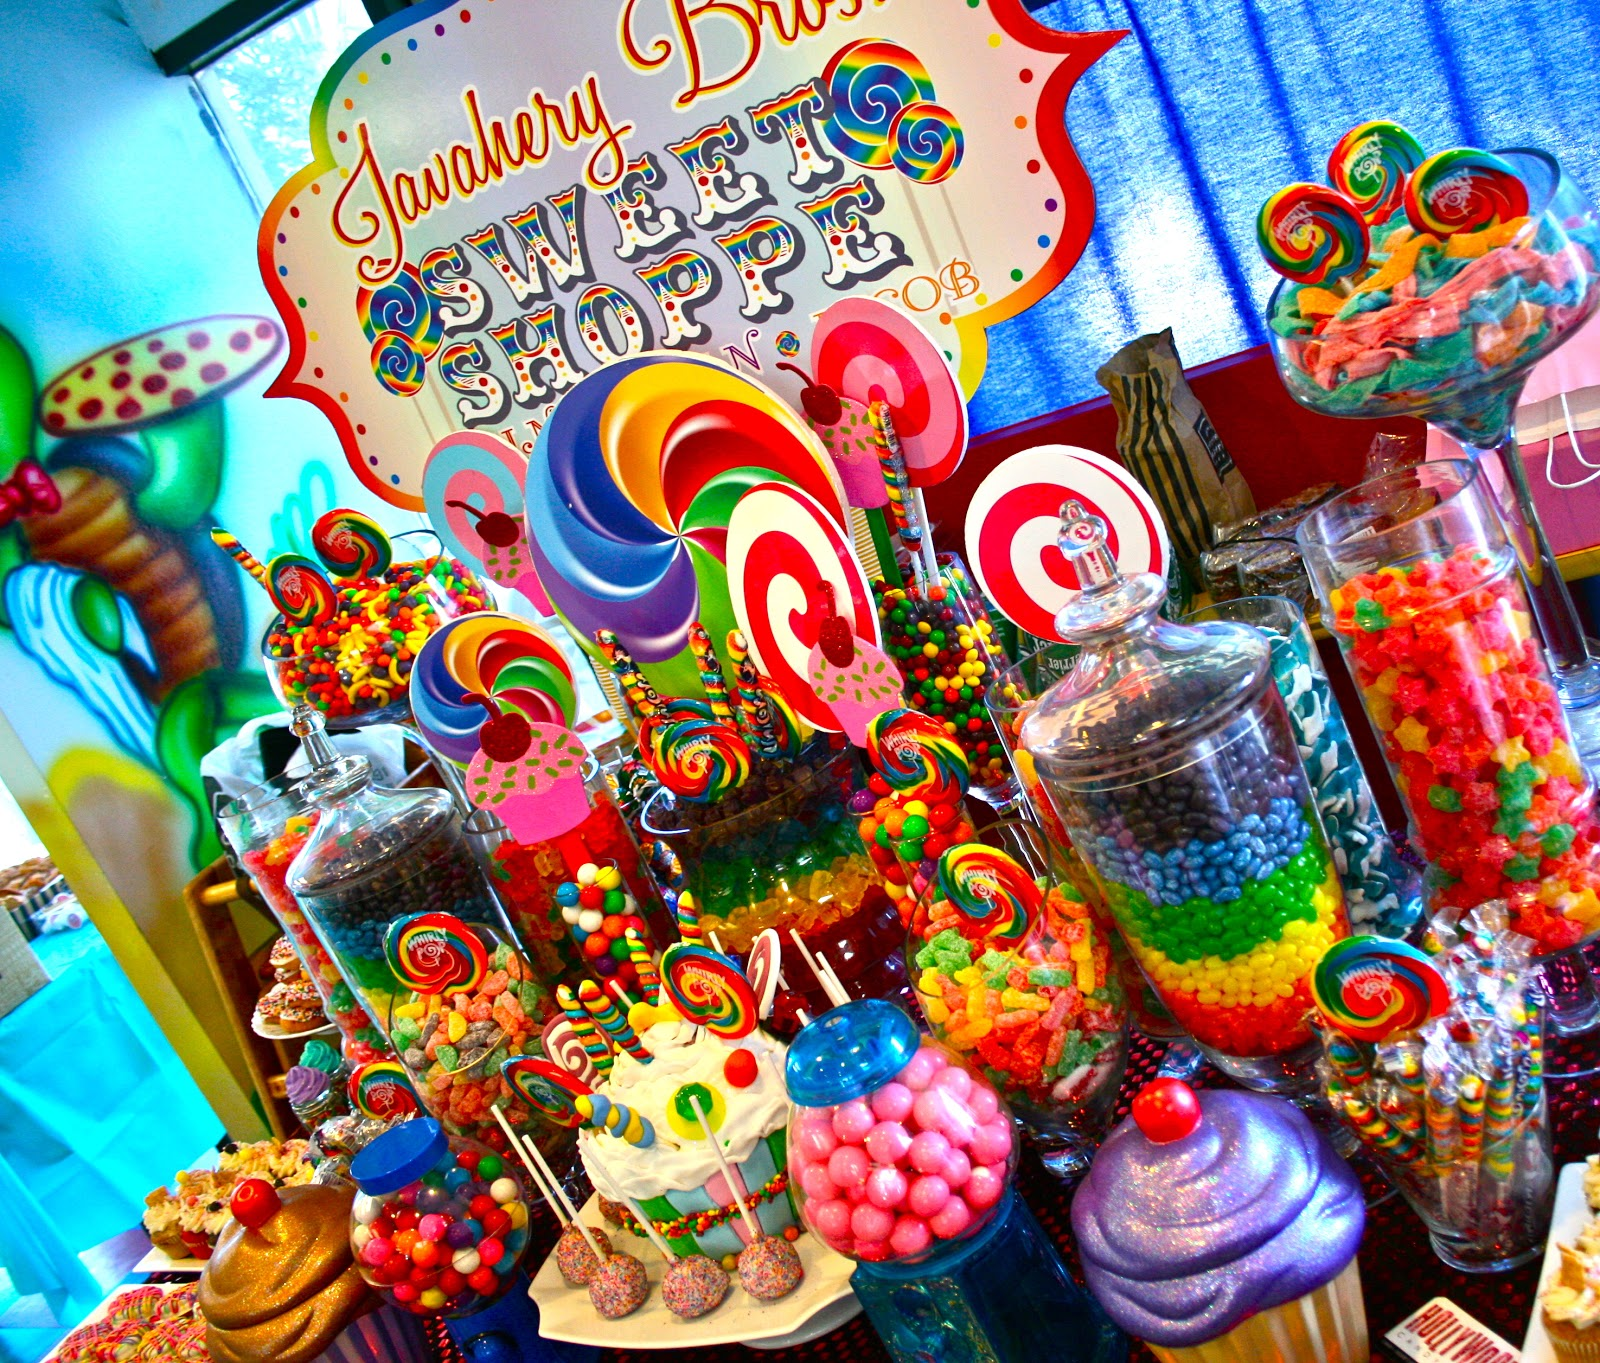 candy land theme parties the ultimate rainbow candy dessert sweet rh hollywoodcandygirls com candyland candy table ideas Candyland Themed Candy Buffet